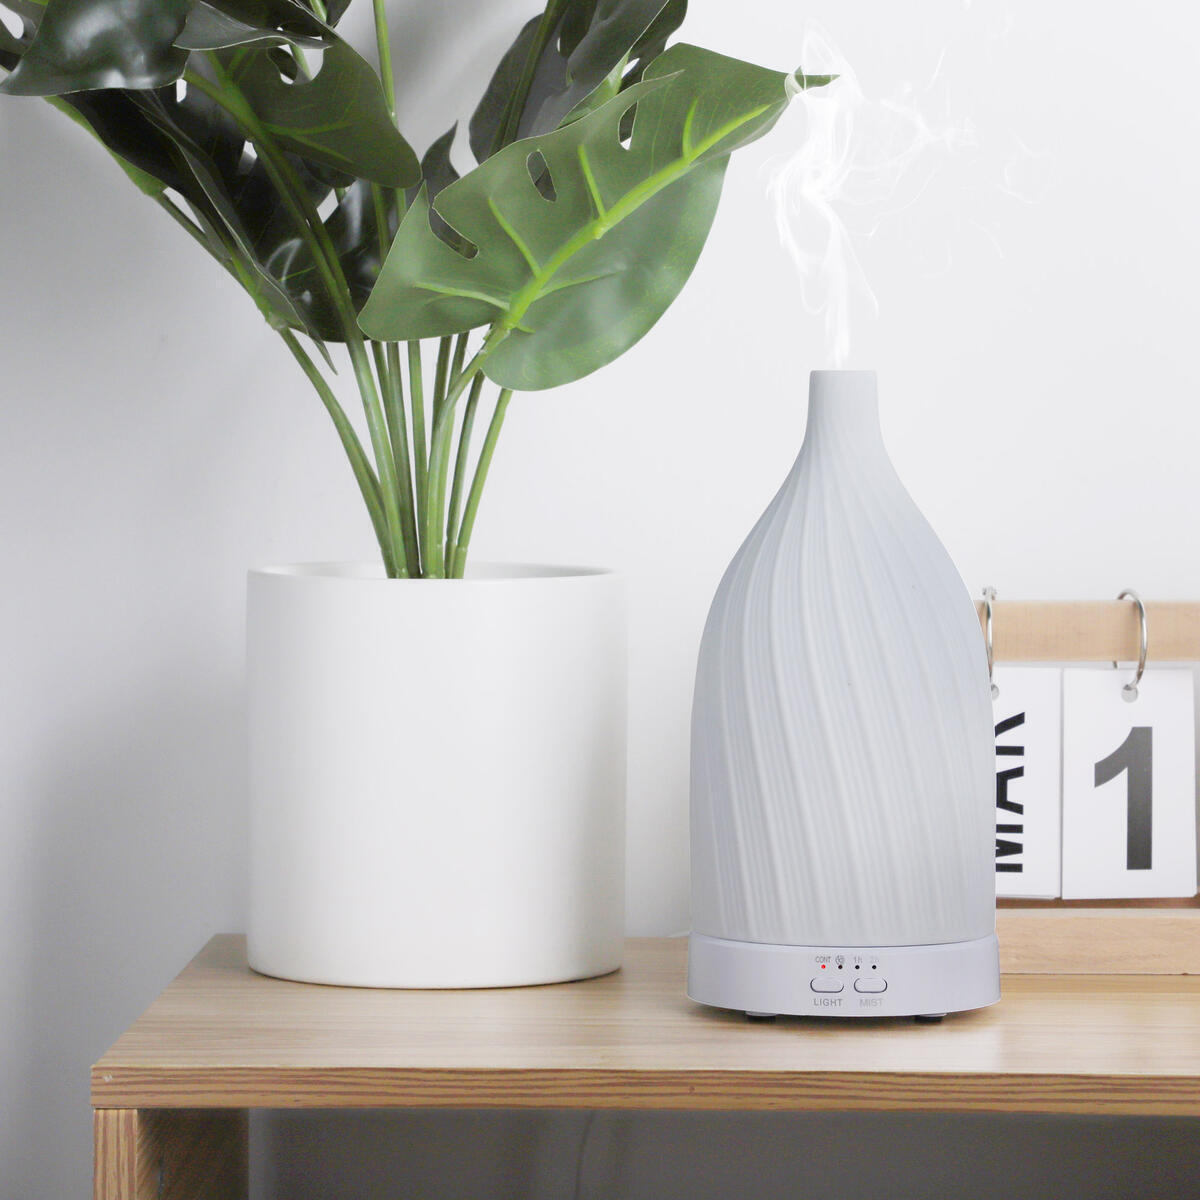 Oil Diffuser, Diffusers for Essential Oils(VY-124791)